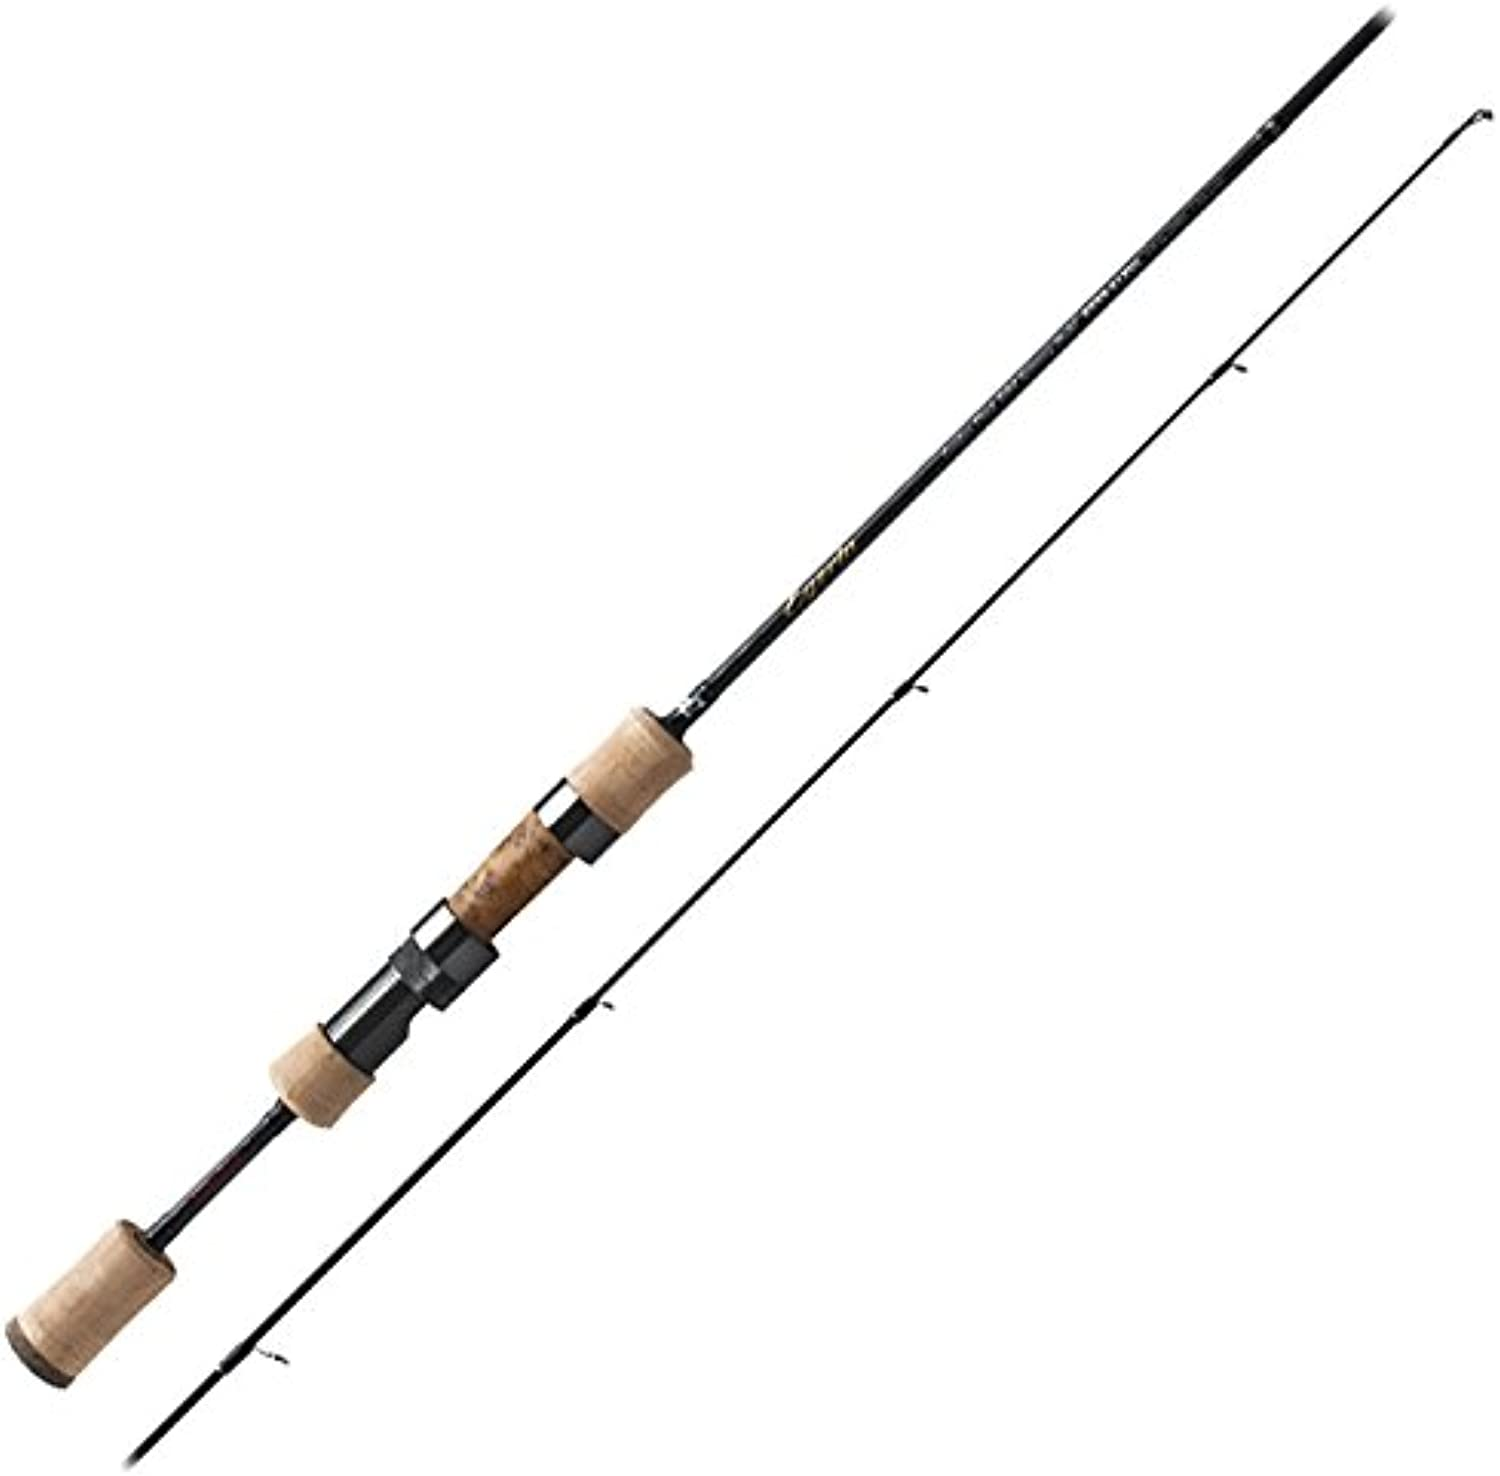 Anglers Republic (Anglers Republic) Rod Egeria Area ESSS61XUL